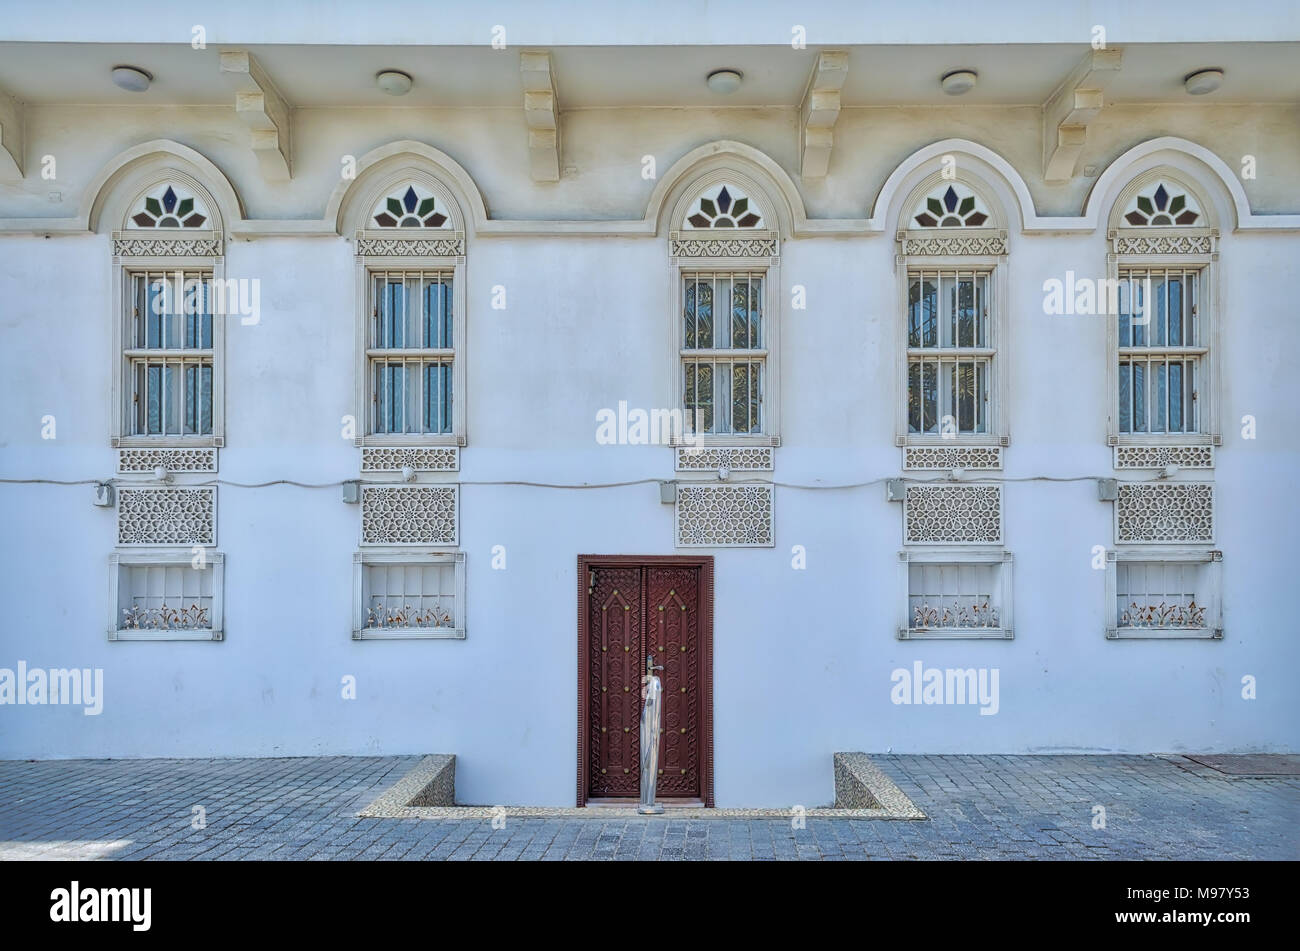 Old, traditional, arabic style windows and door in the front of house - Muscat, Oman. Stock Photo